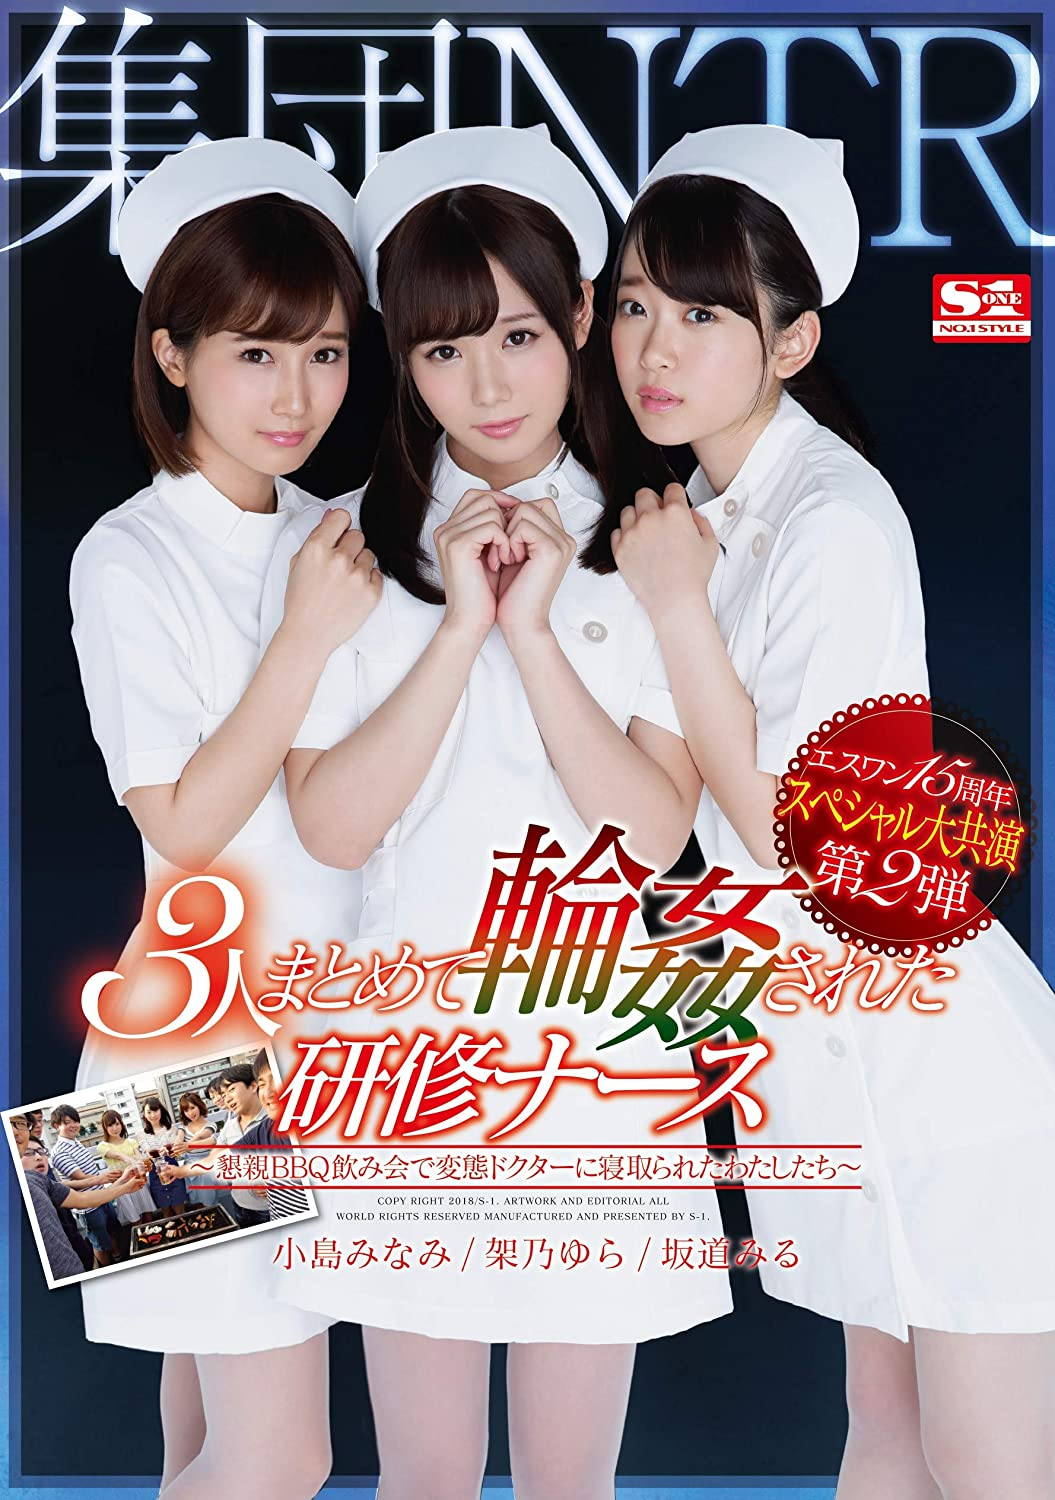 Ssni 355 S1 15th Anniversary Special Featuring Big Stars Part 2